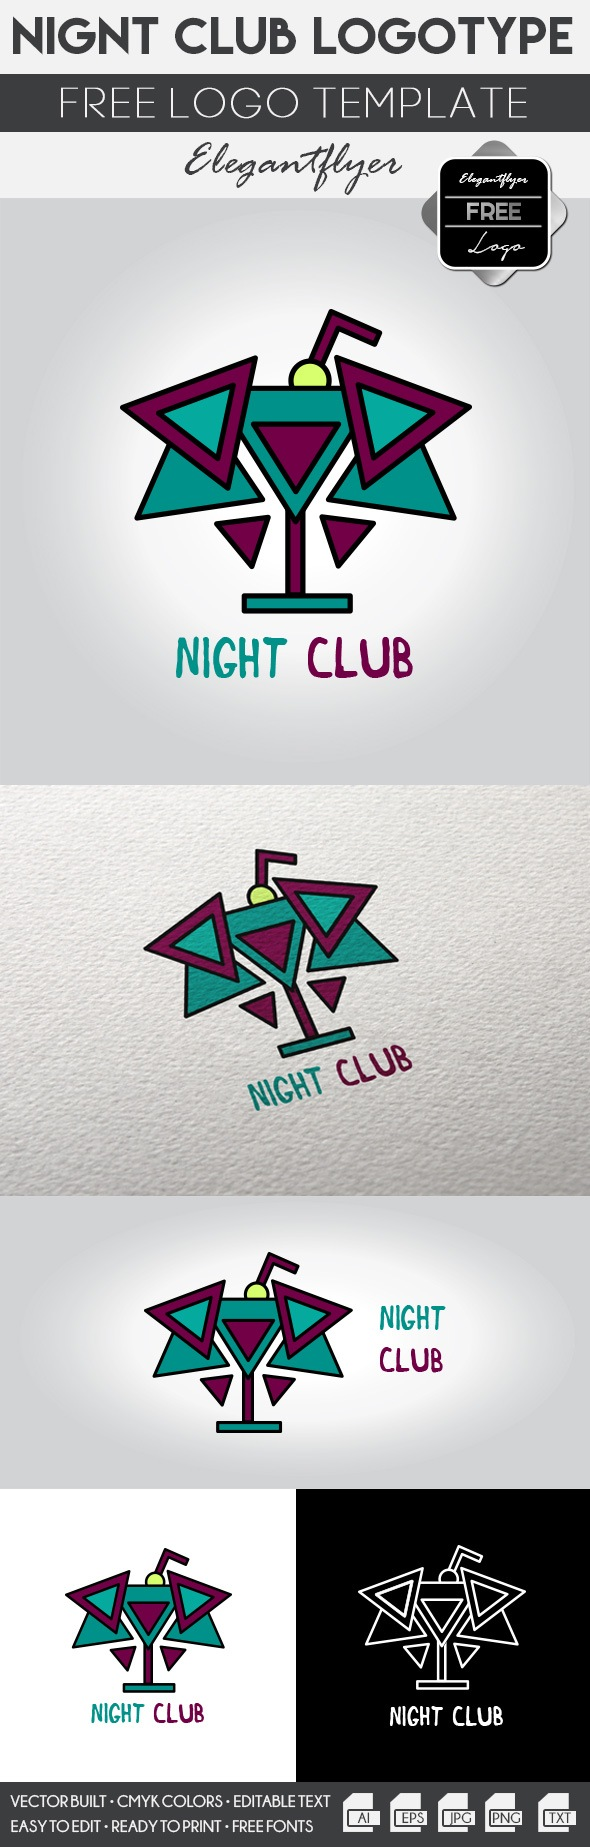 Night Club – Free Logo Template